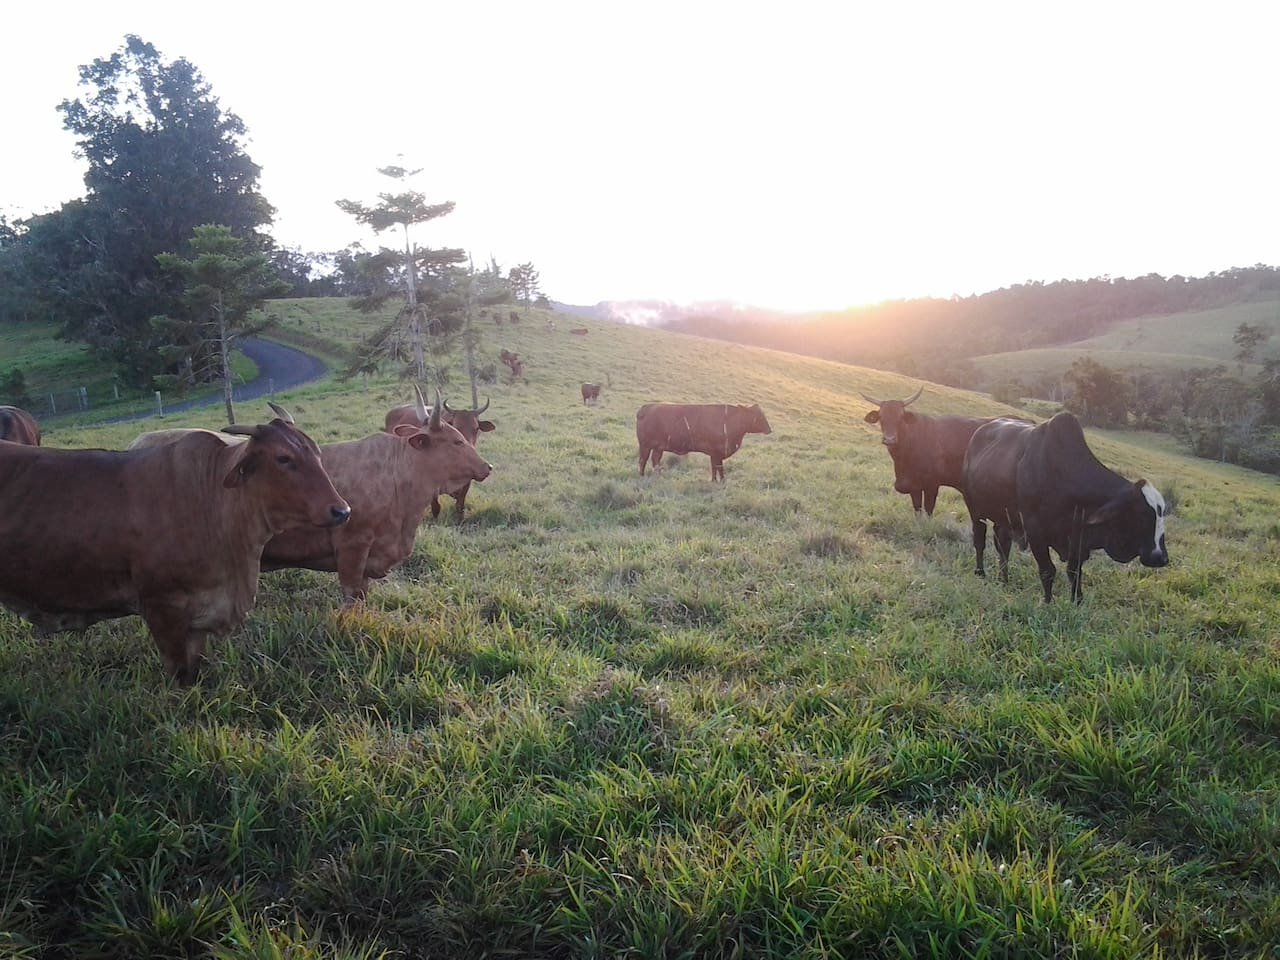 View from near the house. Happy cows graze in green paddocks. Experience life on a farm.